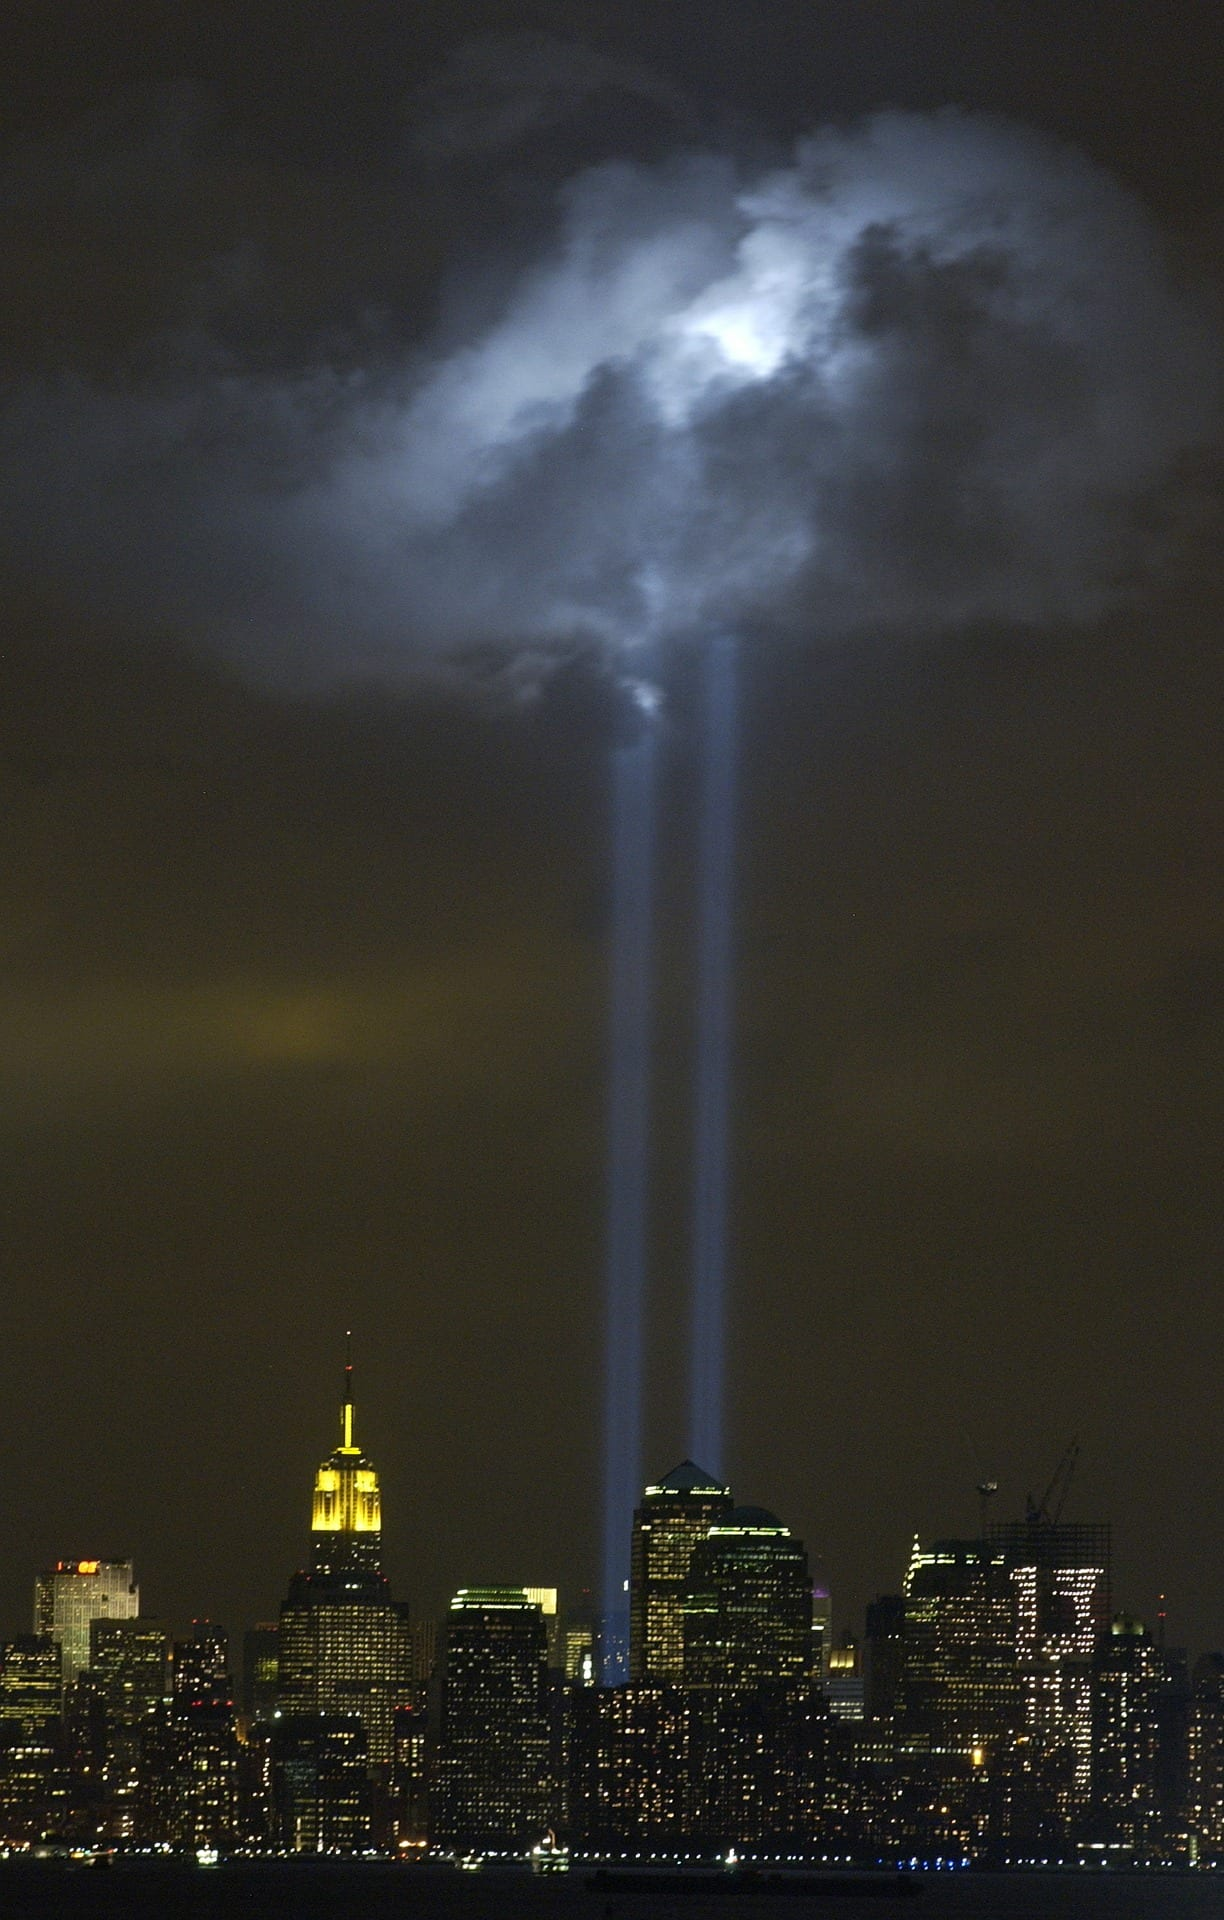 tribute in light memorial for 9/11